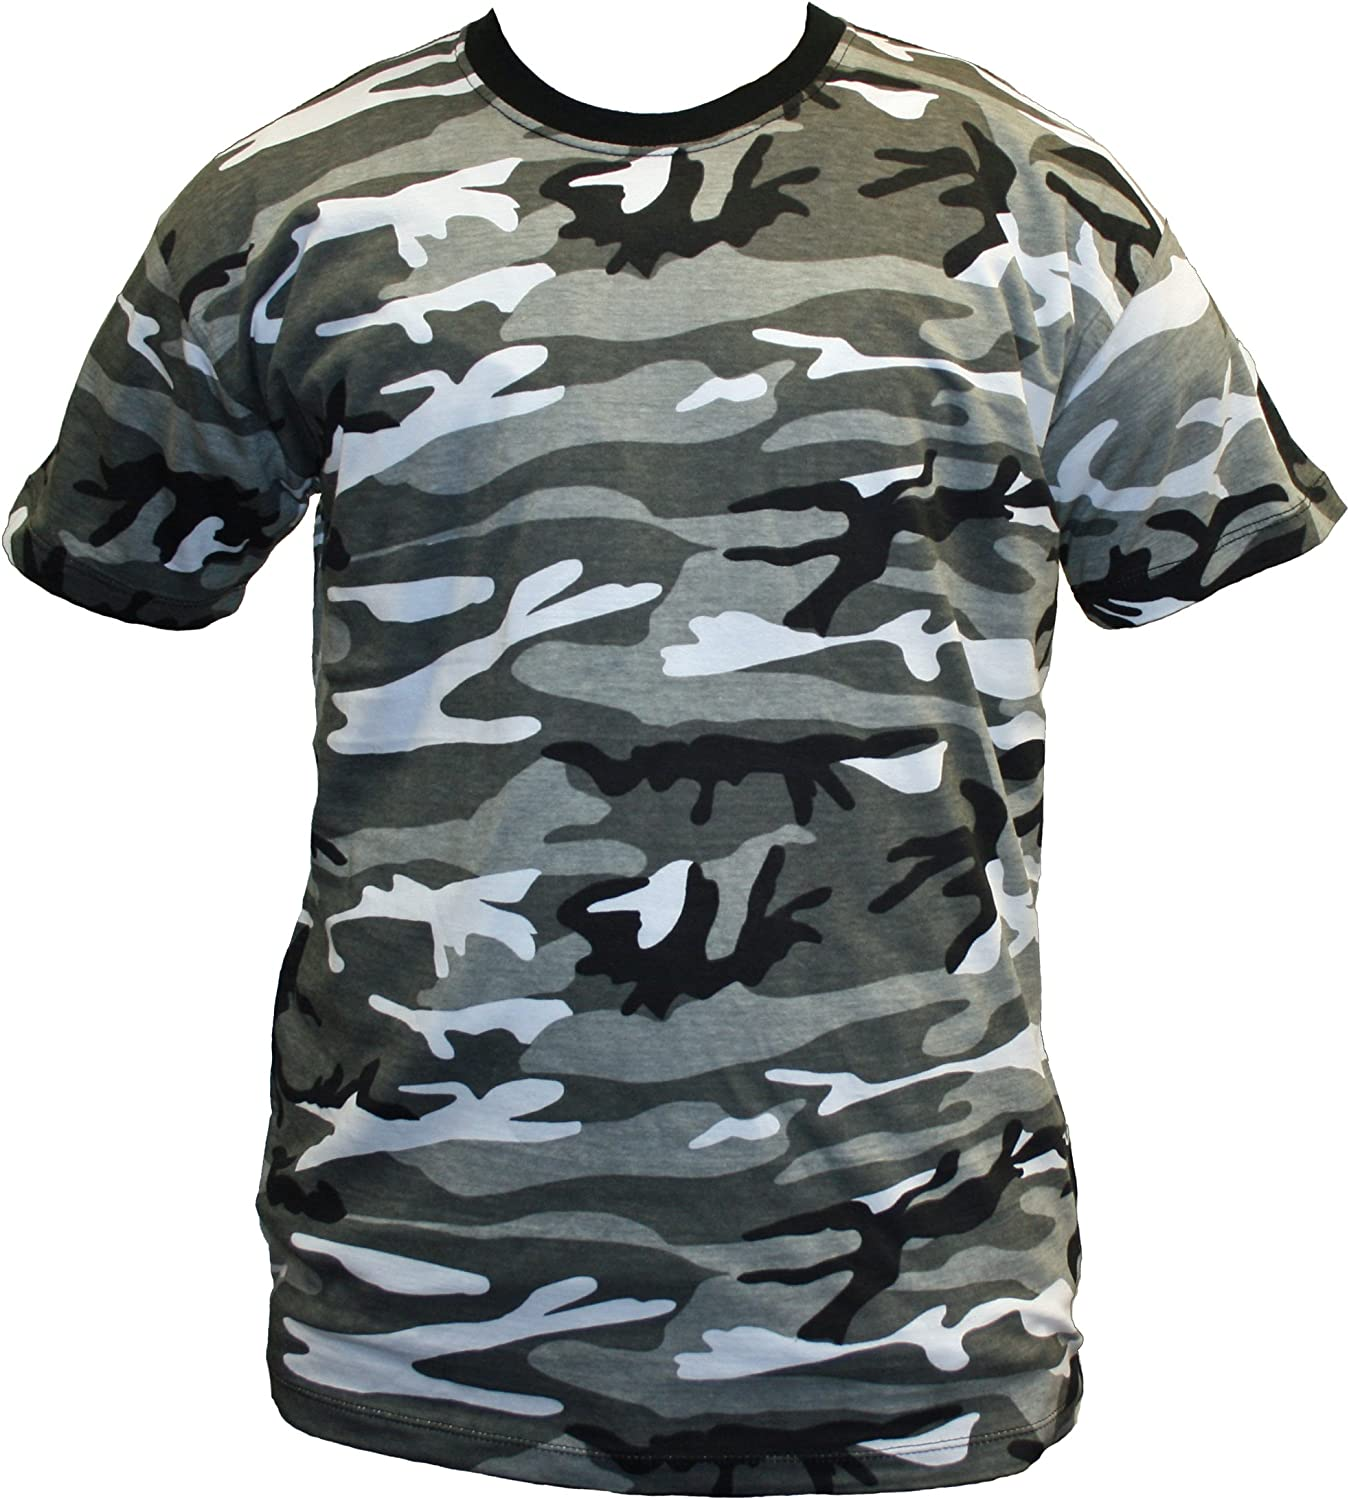 Dallaswear Adults Camo Army Cargo Combat Military T-Shirt S-5XL 8 Colours!